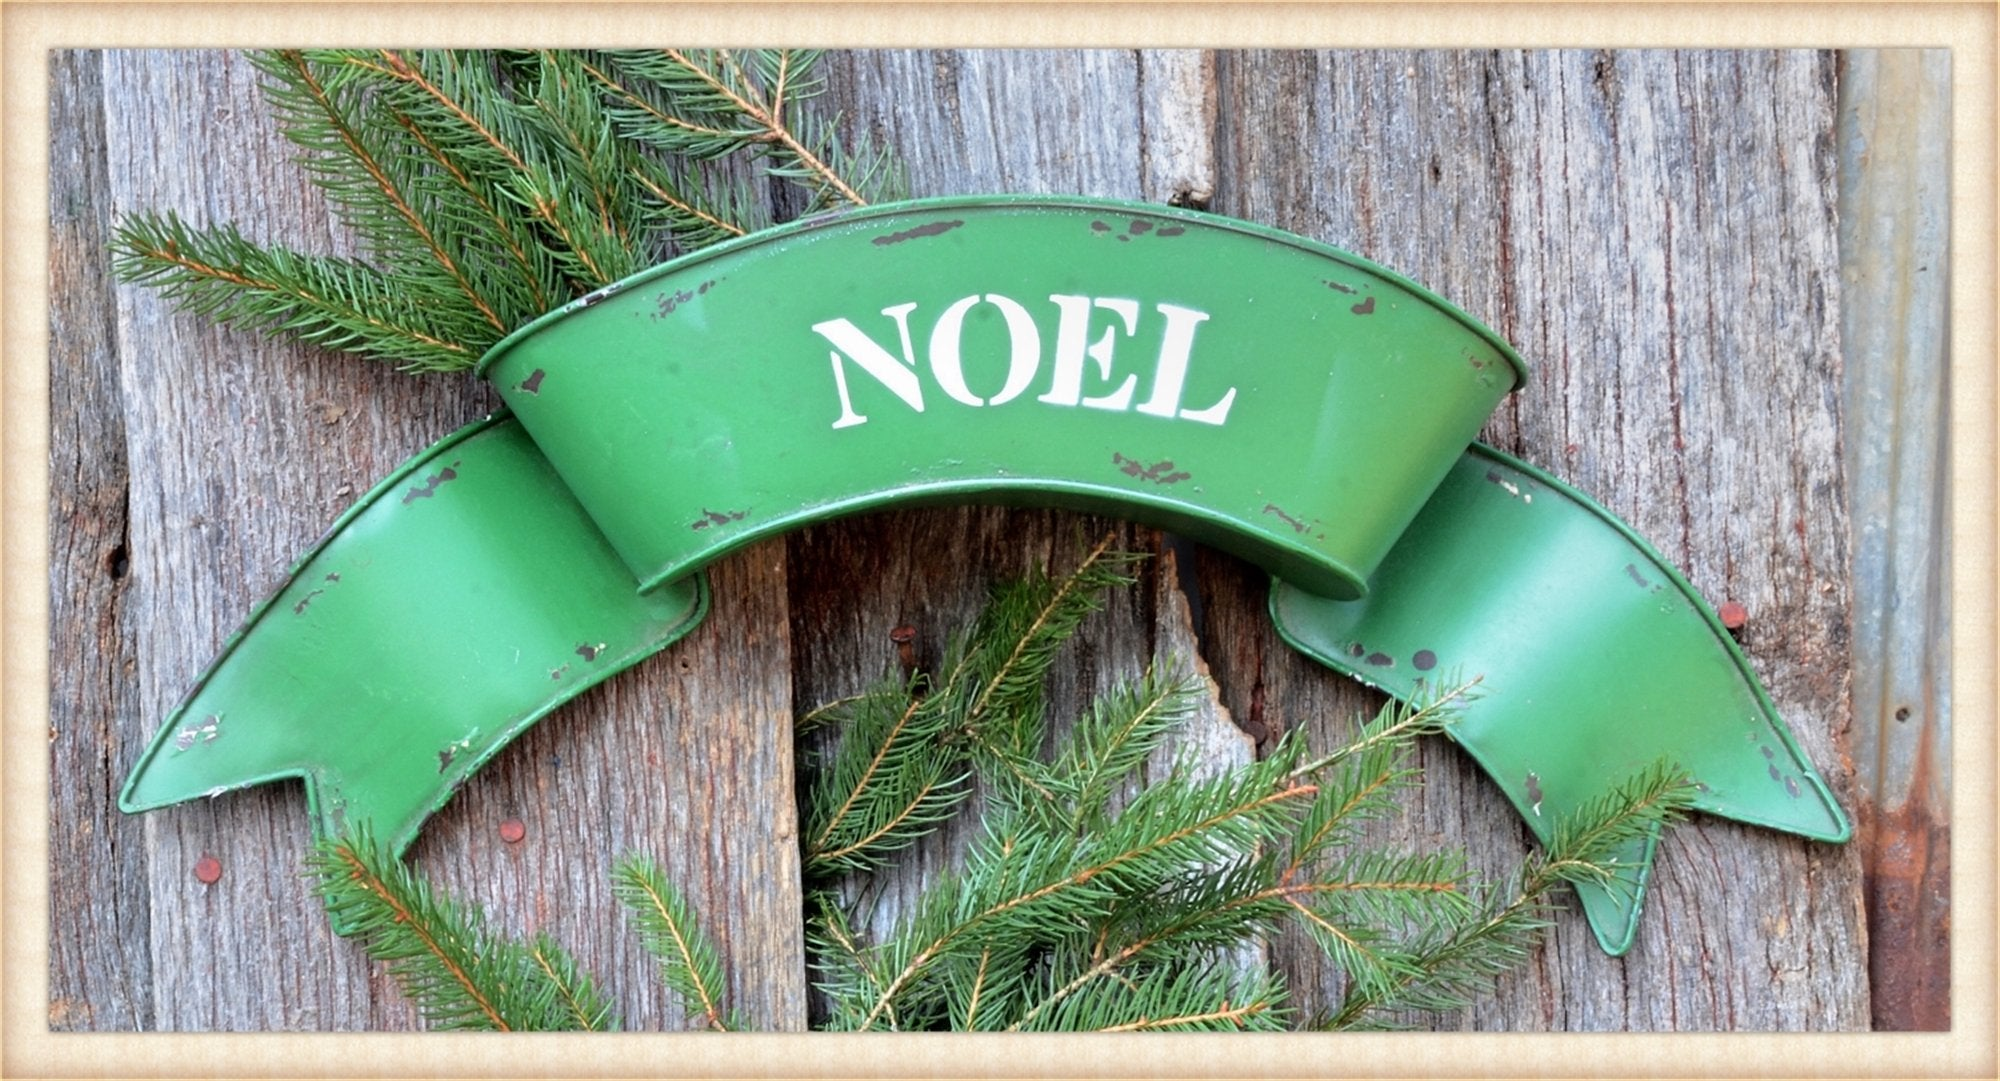 Noel Planter - Seasonal-Holiday